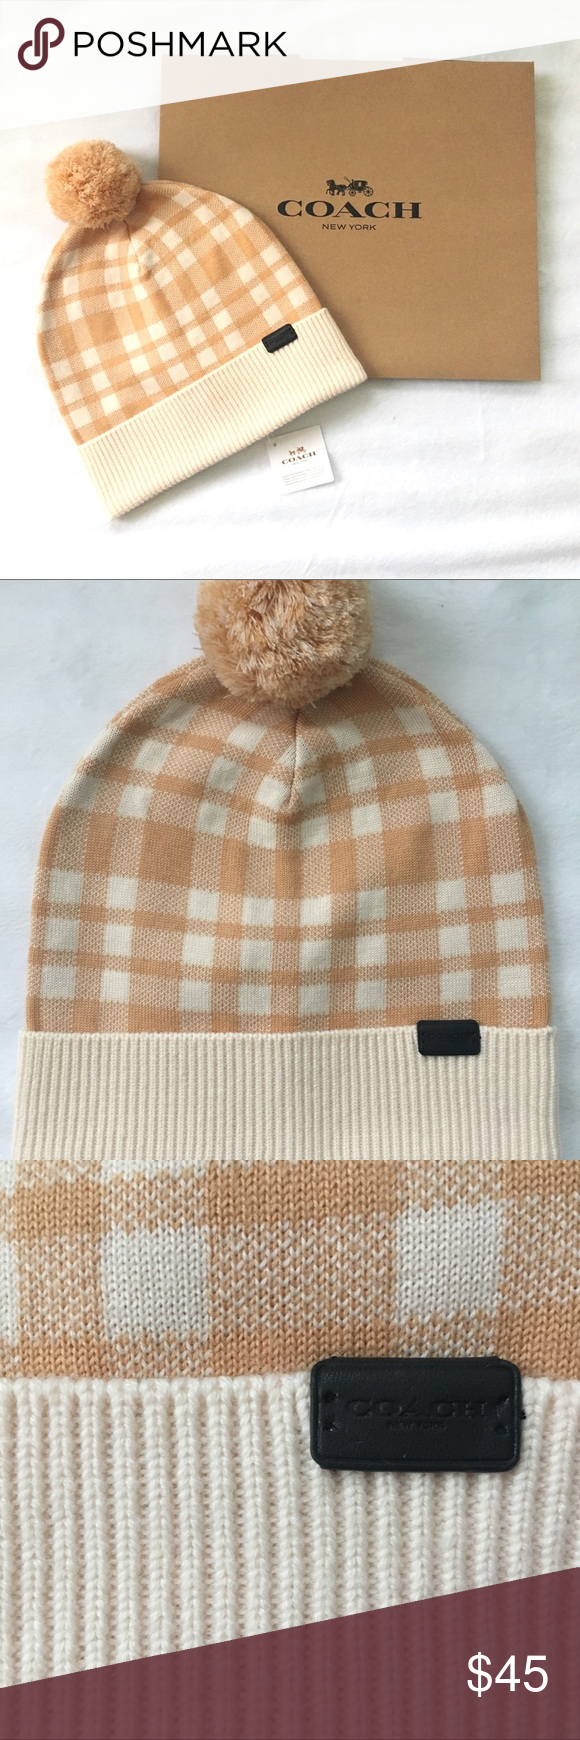 411ef73089a Coach Plaid Pom Hat Beanie Brand new with tag Style  F30156 Color  Caramel  Adorable plaid hat with Pom Brand new. Comes with original Coach box and  tissue ...